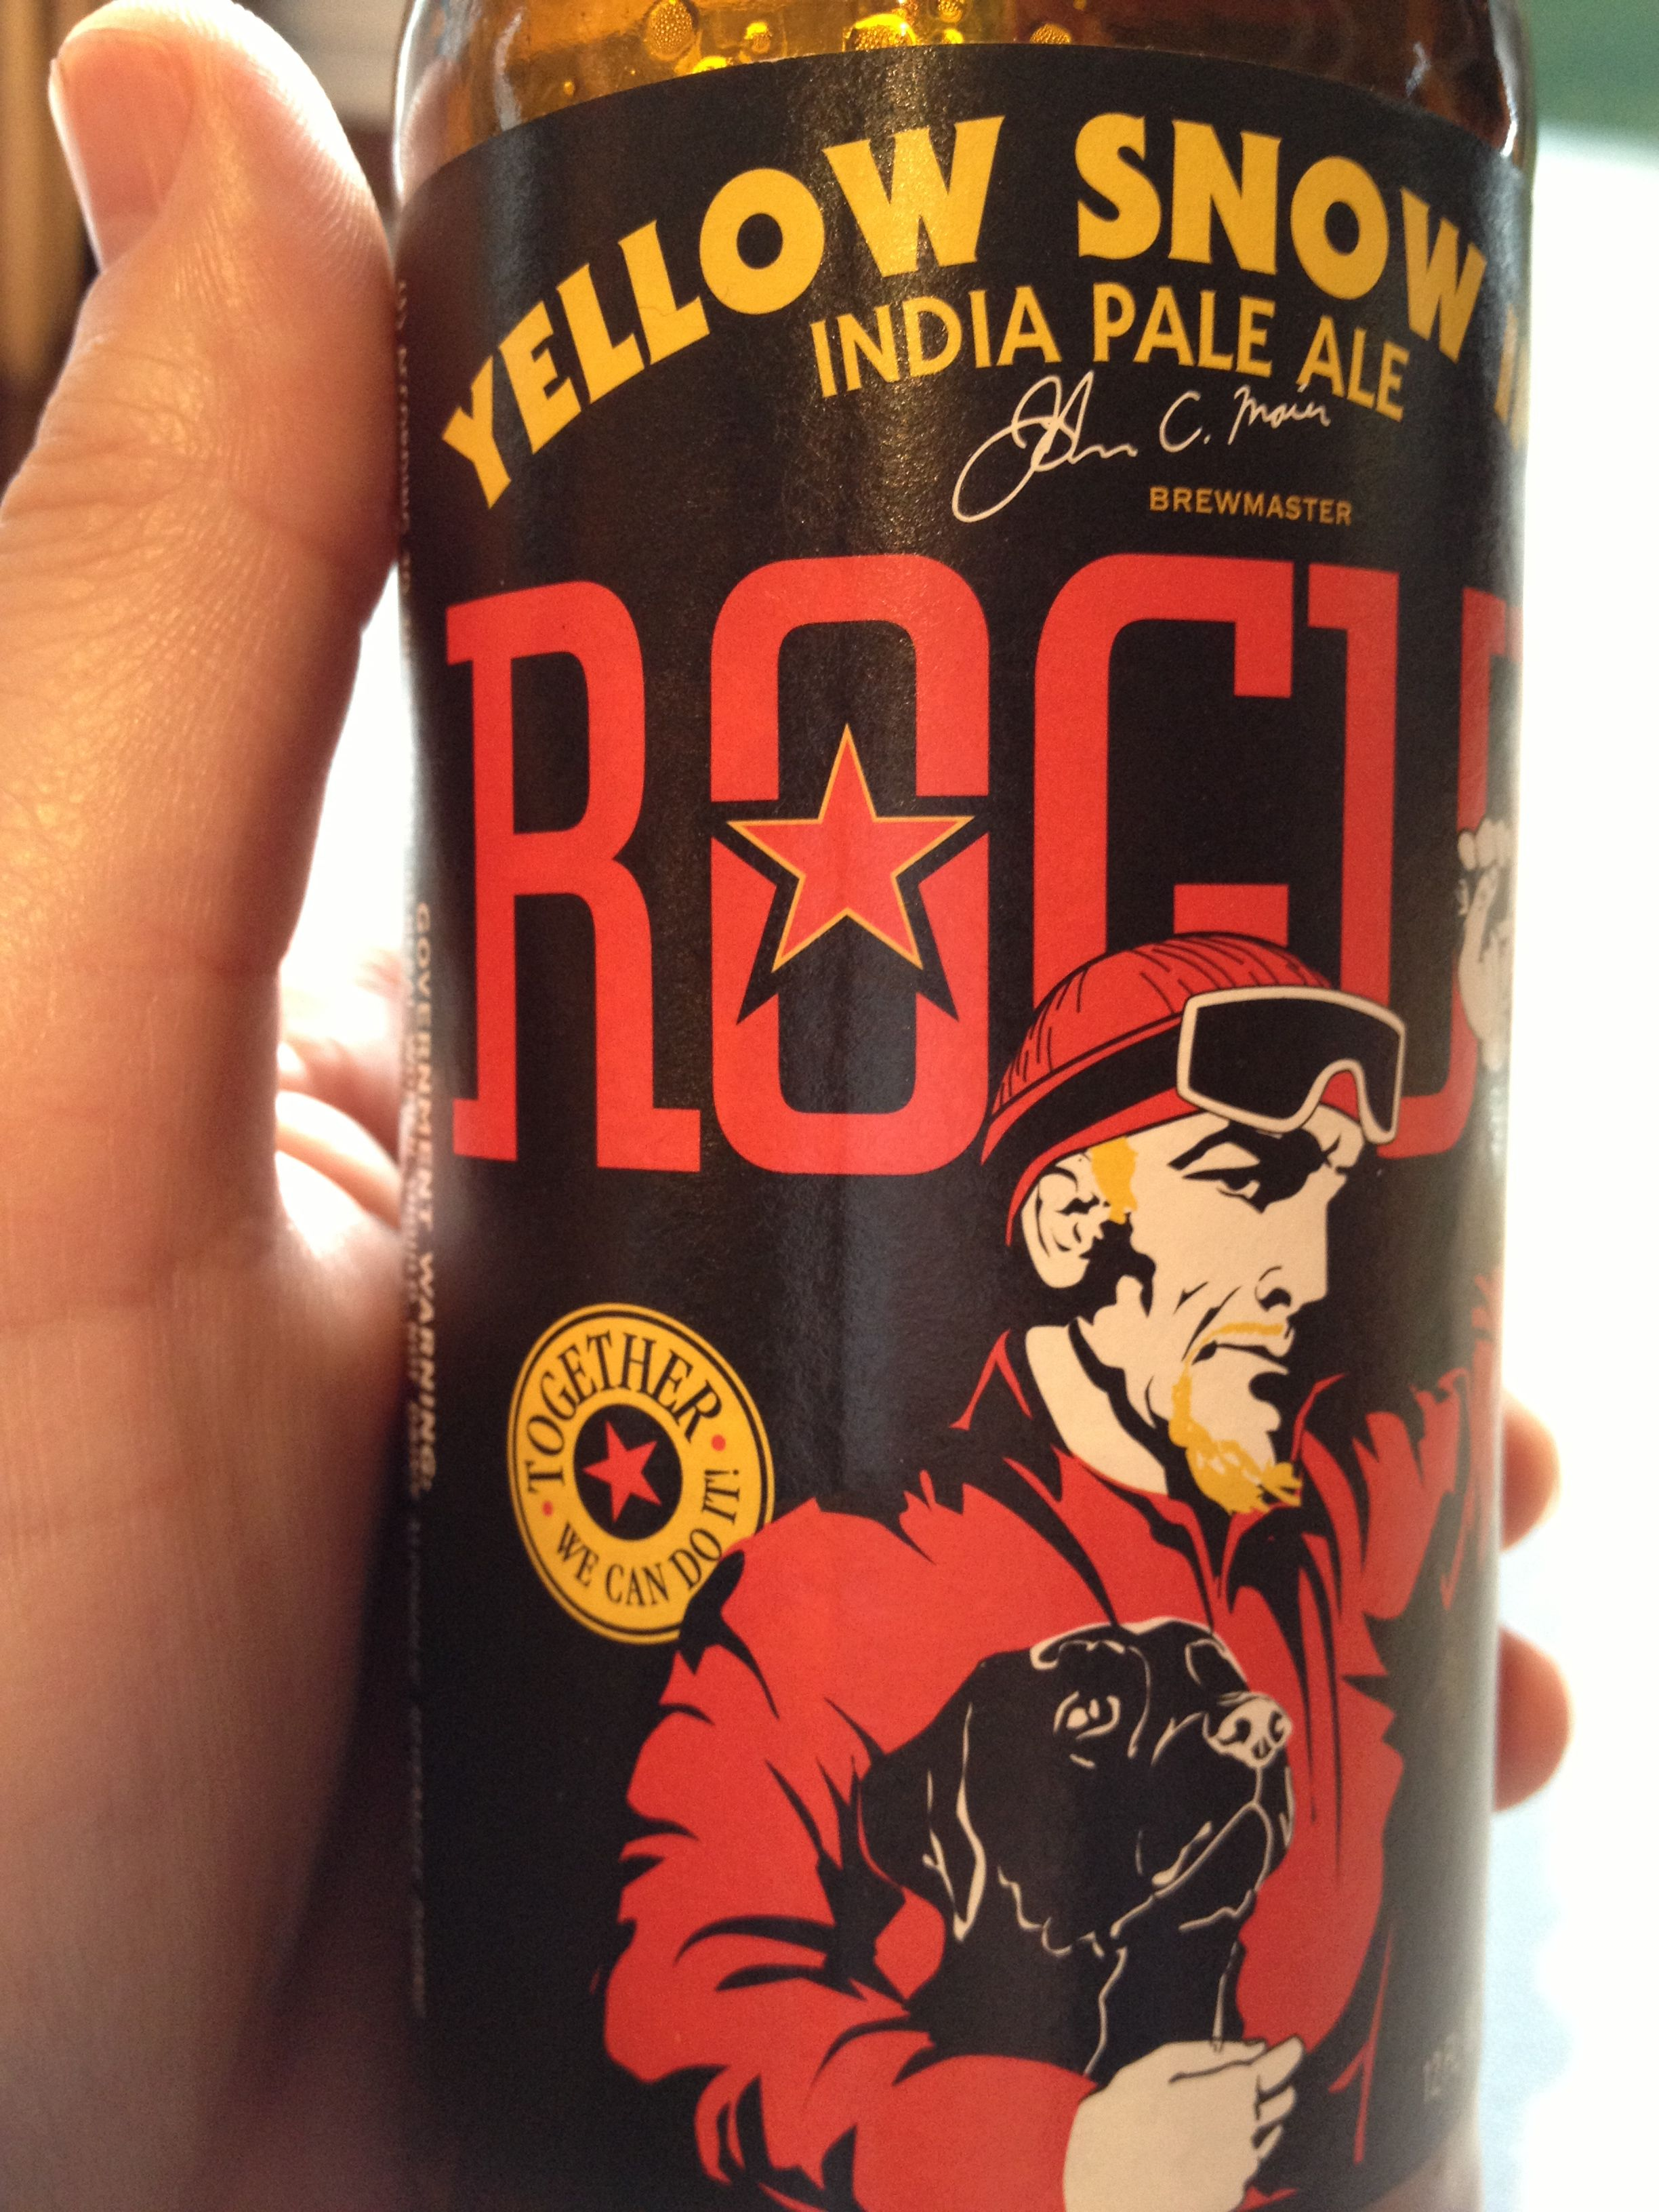 Rogue S Yellow Snow Ipa Great Flavor Very Drinkable And Forward In Your Mouth Fruity 70 Ibu But Tastes Much Lower 7 6 Abv Root Beer Pale Ale Beer Can